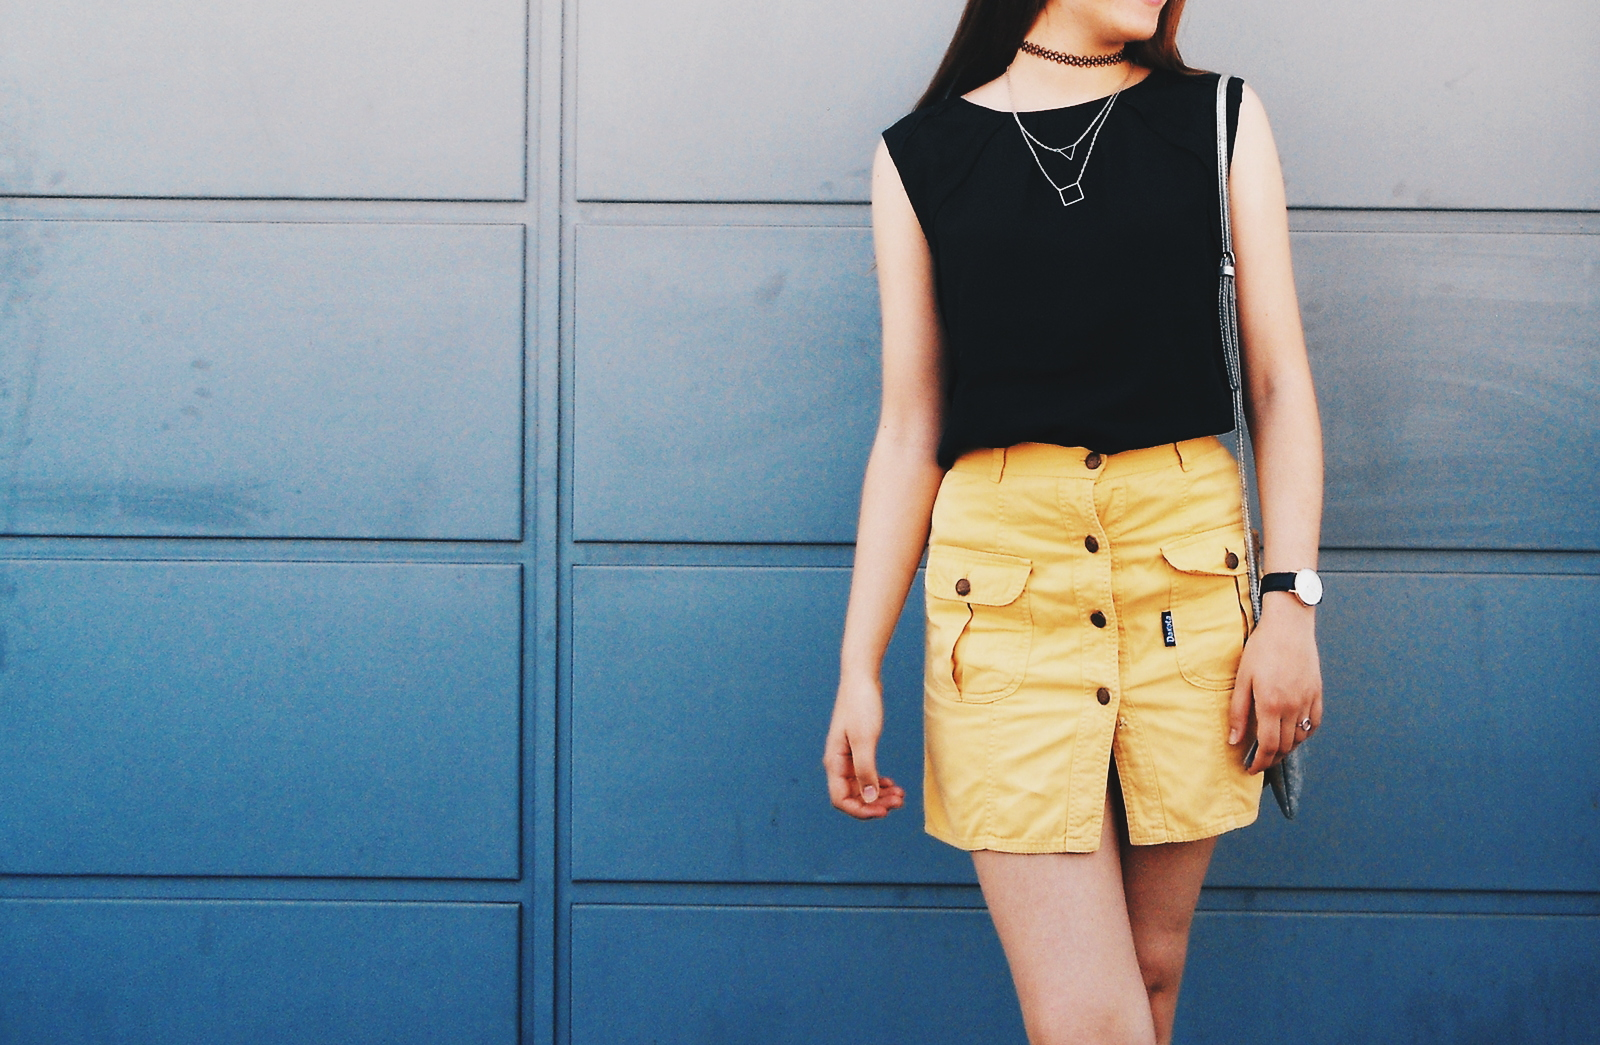 outfit | Vintage skirt